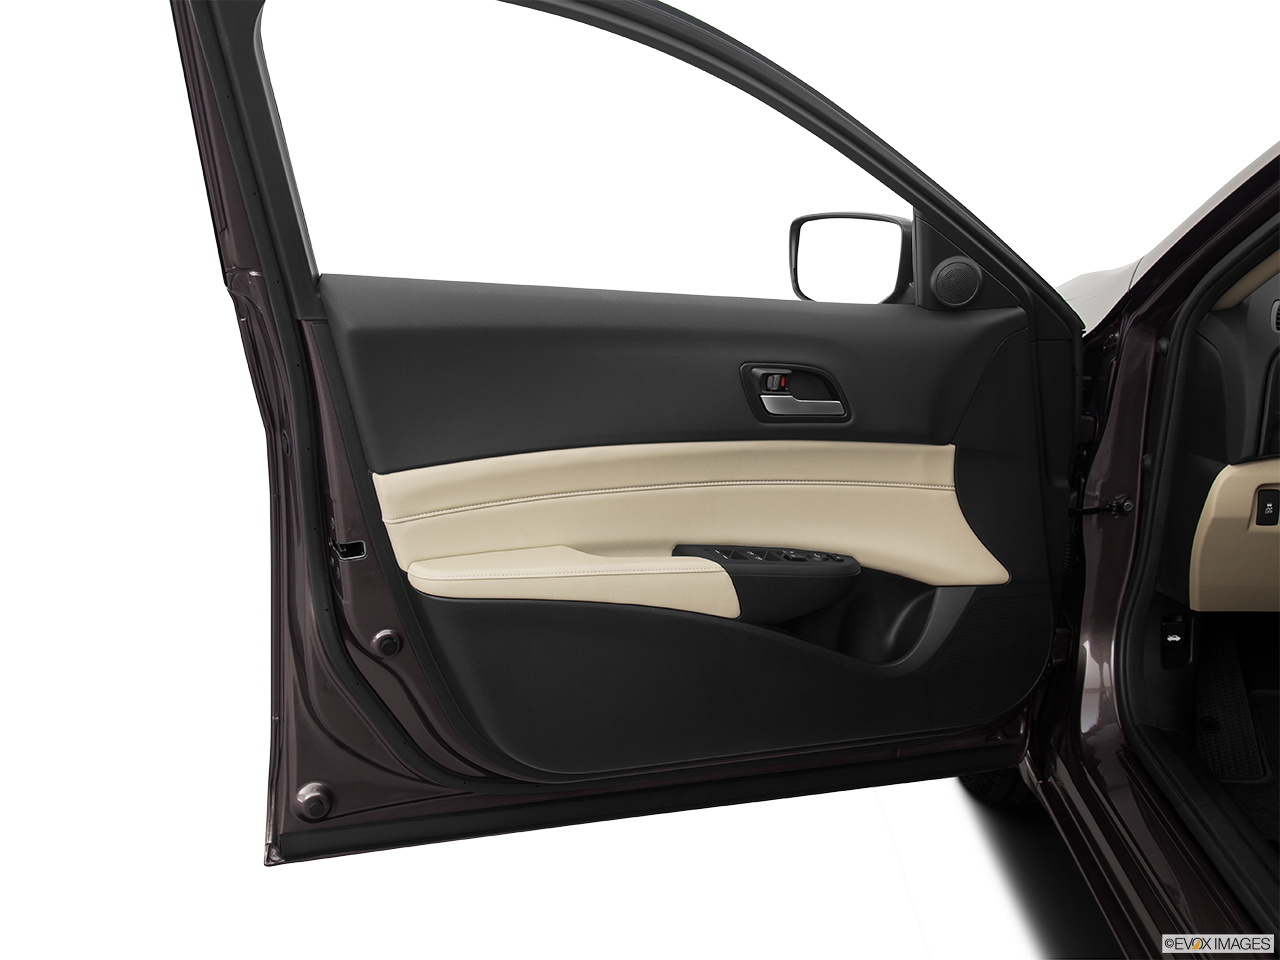 2014 Acura ILX Hybrid Base Inside of driver's side open door, window open.